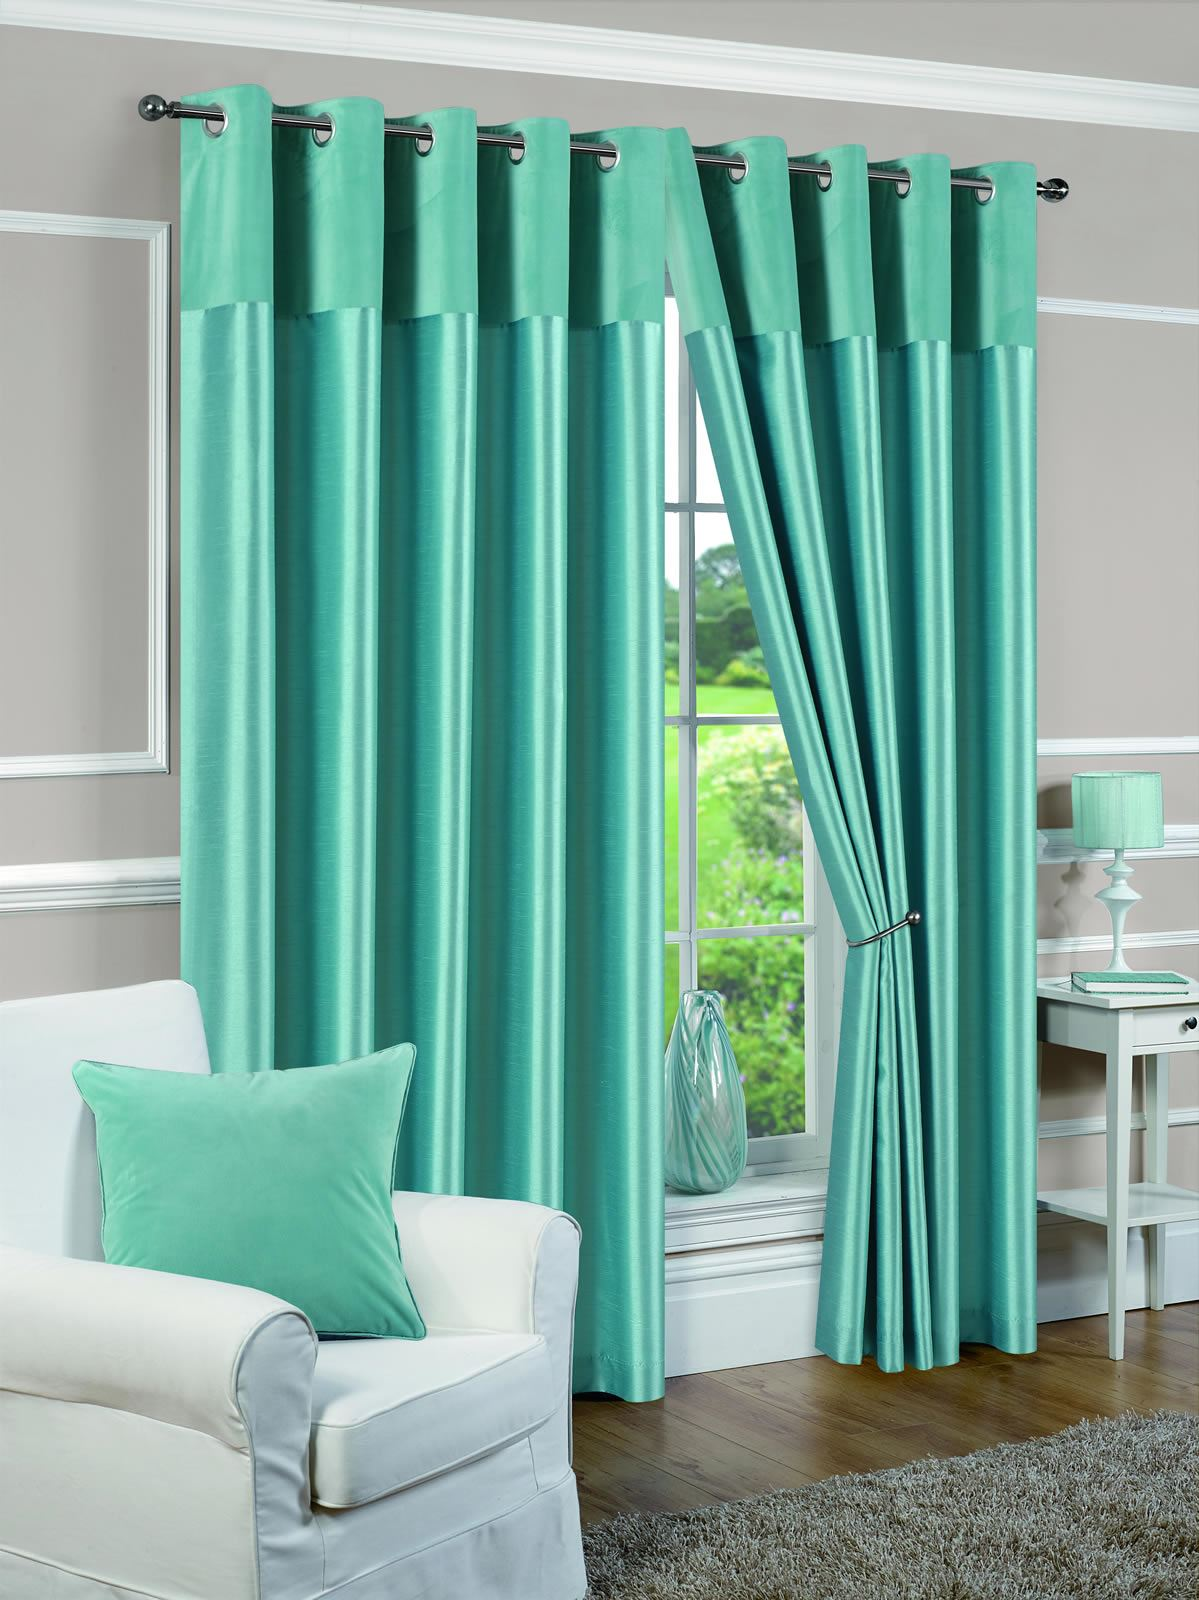 eyelet fully lined ready made curtains ring top pair white. Black Bedroom Furniture Sets. Home Design Ideas